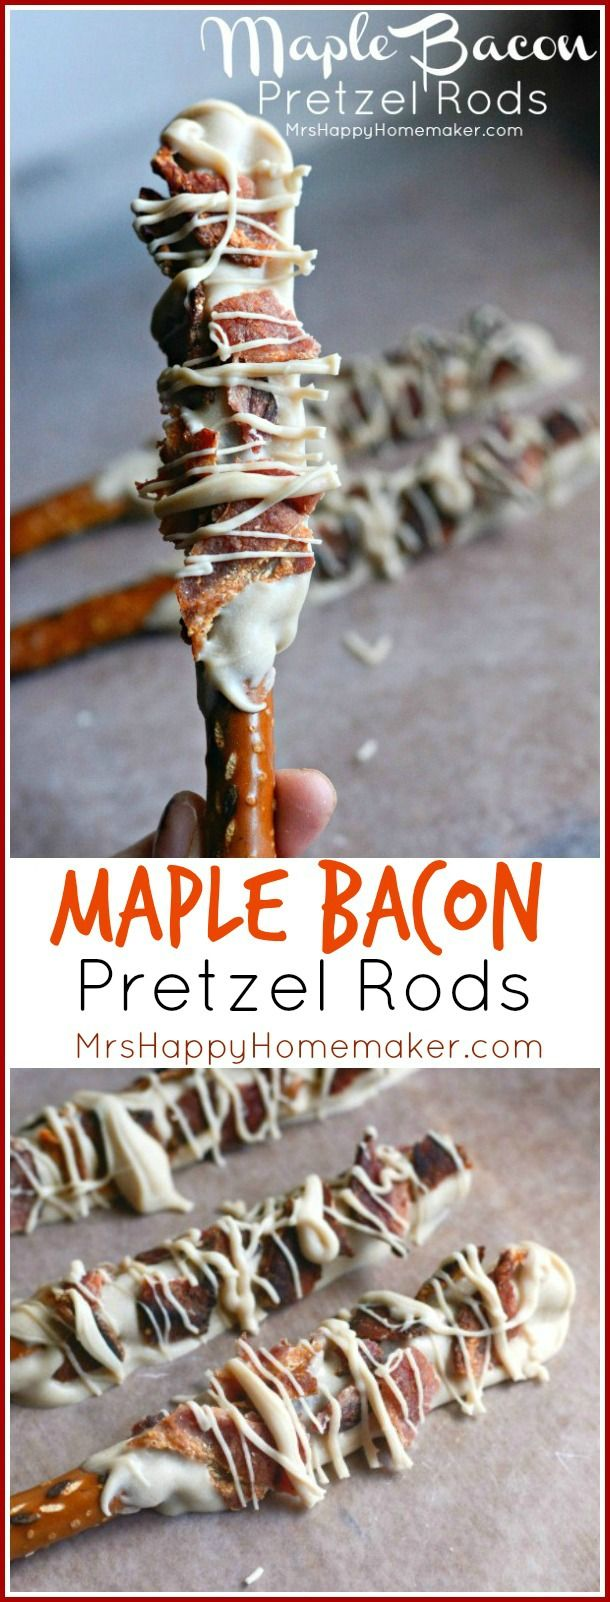 These Maple Bacon Pretzel Rods are the perfect combination of sweet & salty – a bacon lover's dream! You only need 4 ingredients & they're SO easy & yummy!